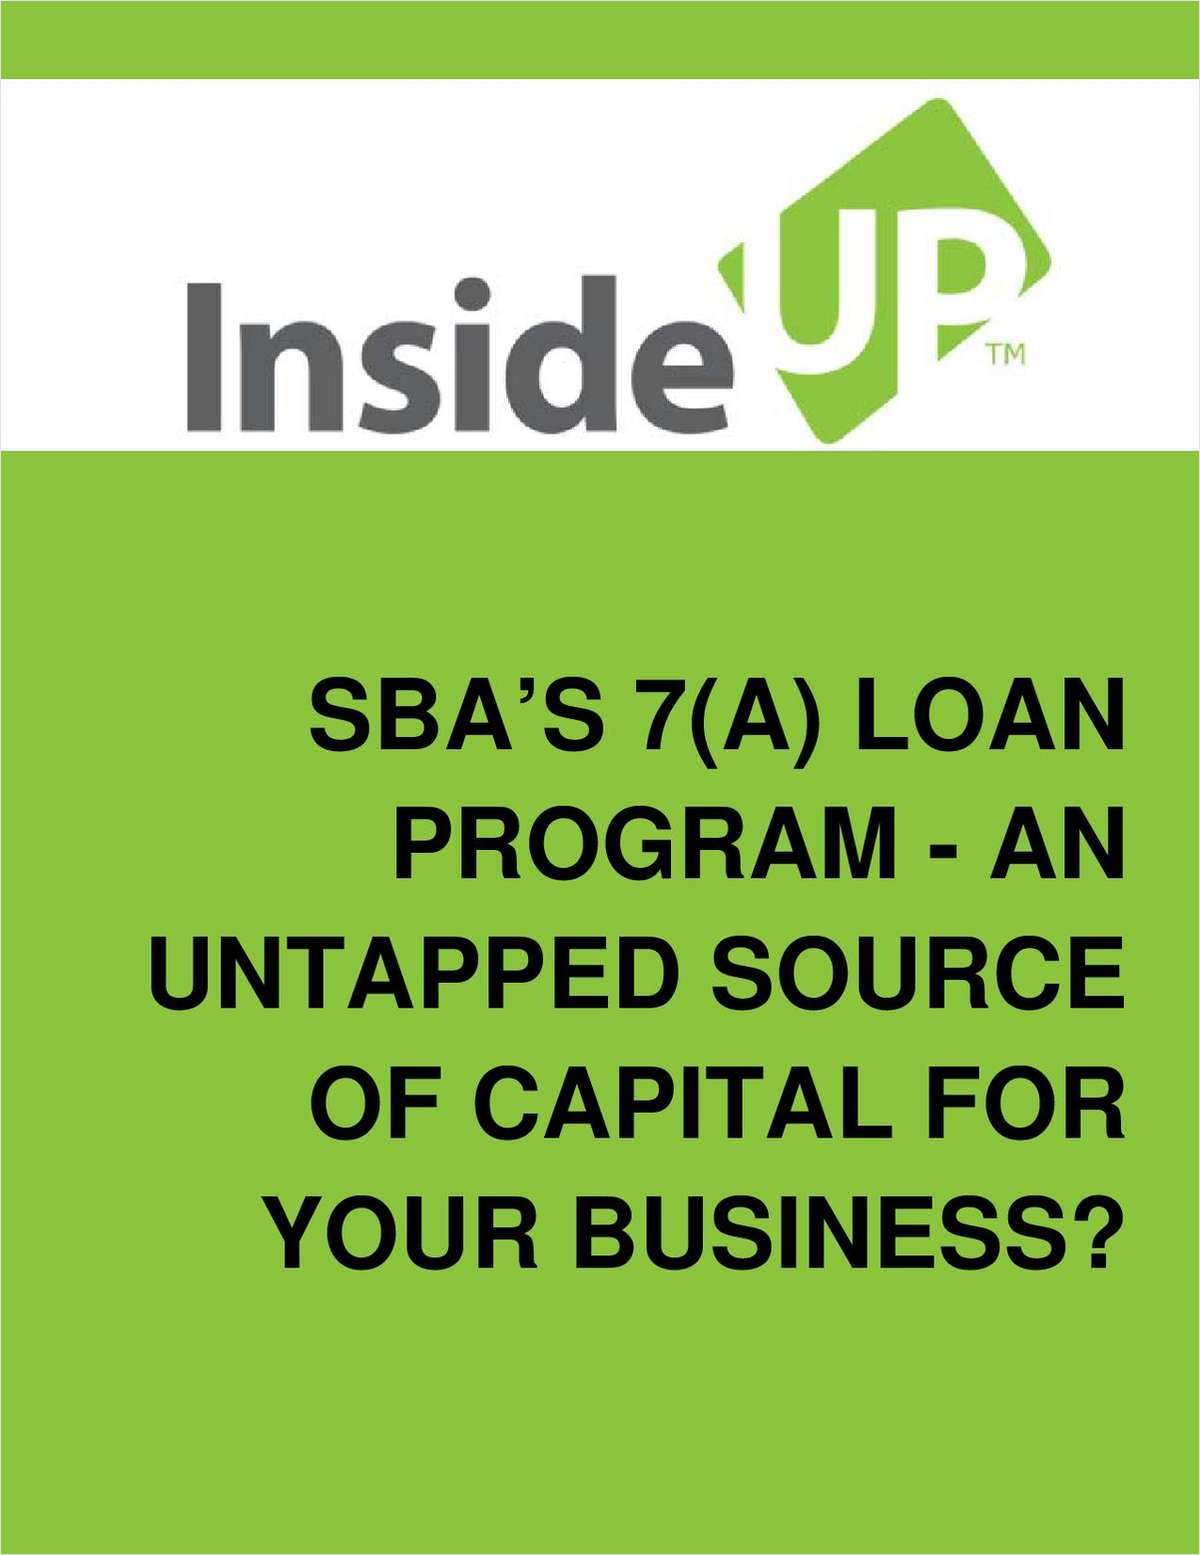 SBA's 7(a) Loan Program - For Your Start-up or Growing Business